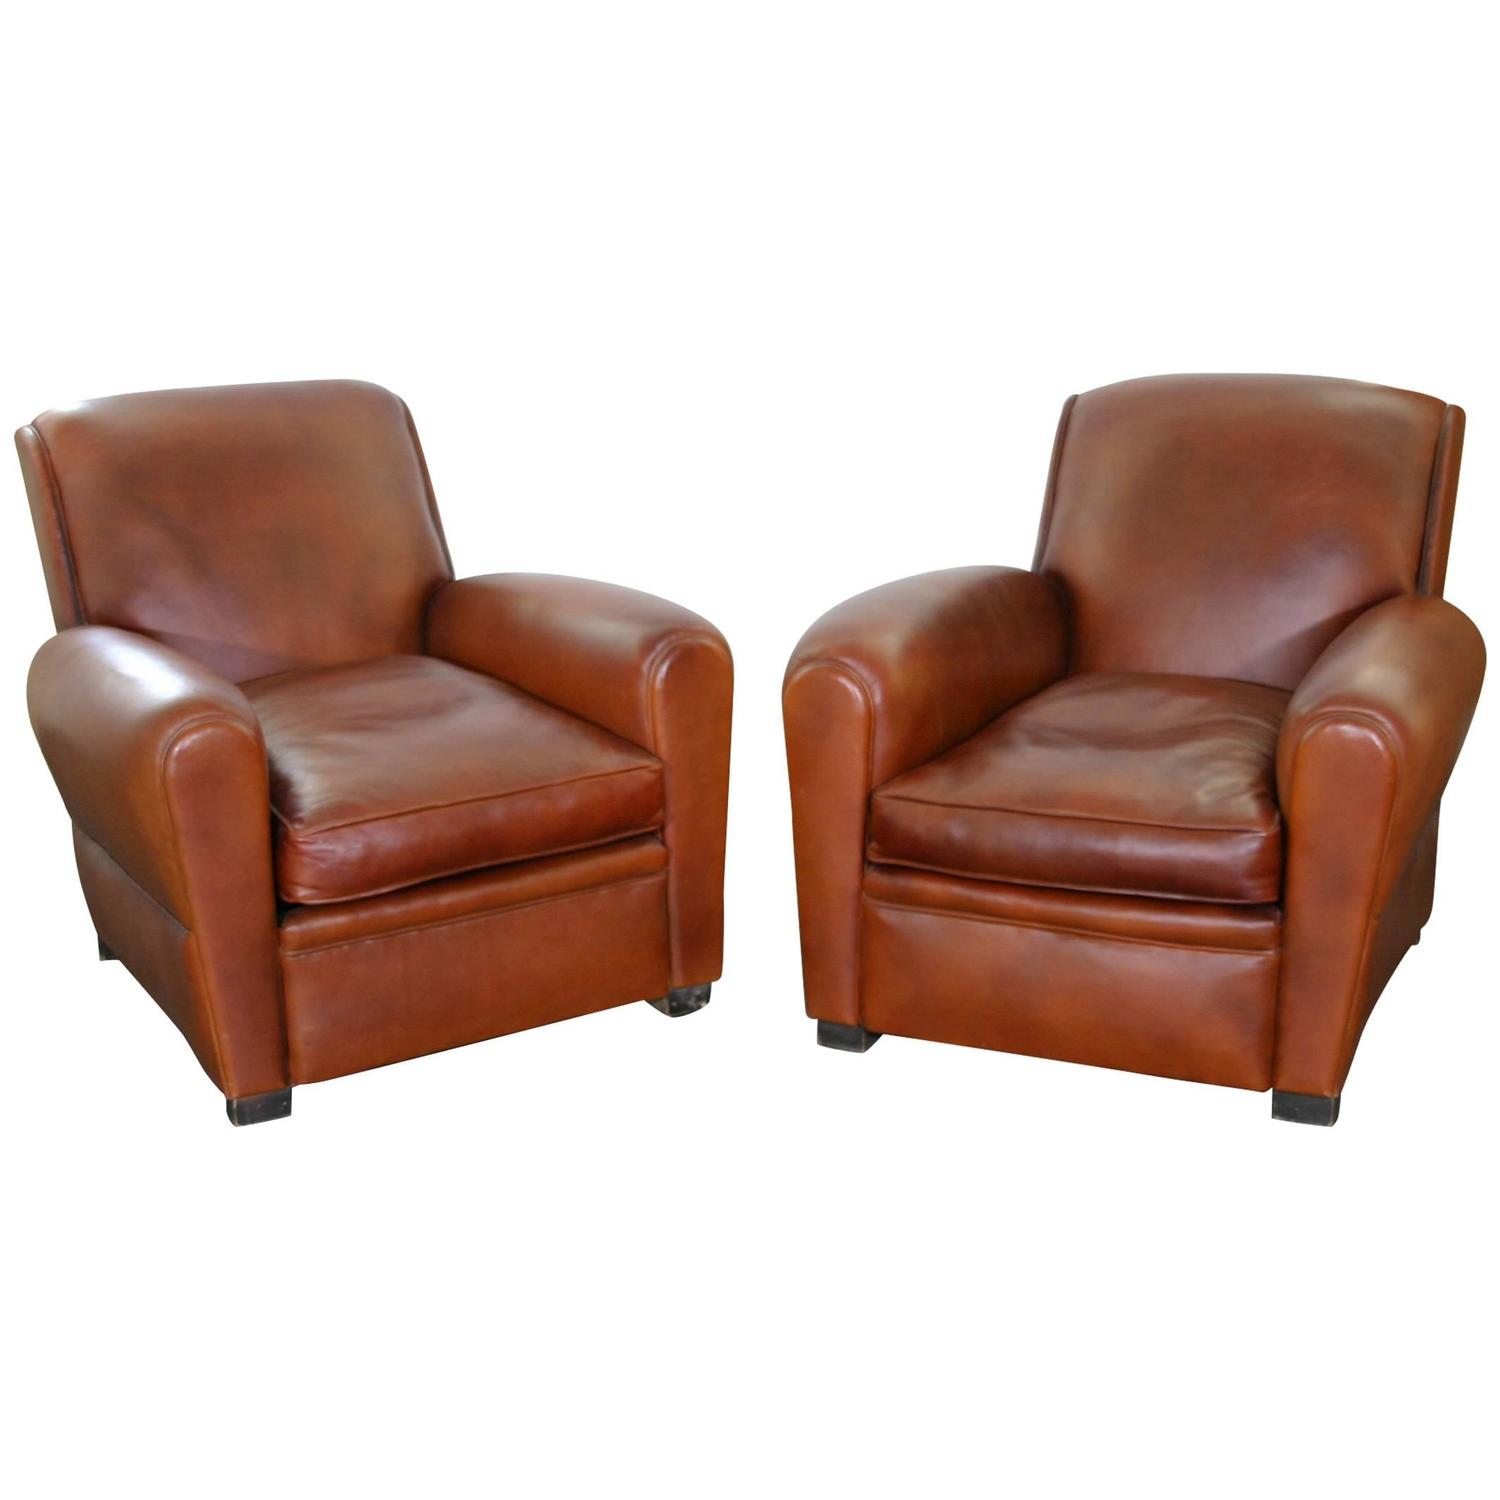 pair of leather club chairs for sale at 1stdibs. Black Bedroom Furniture Sets. Home Design Ideas